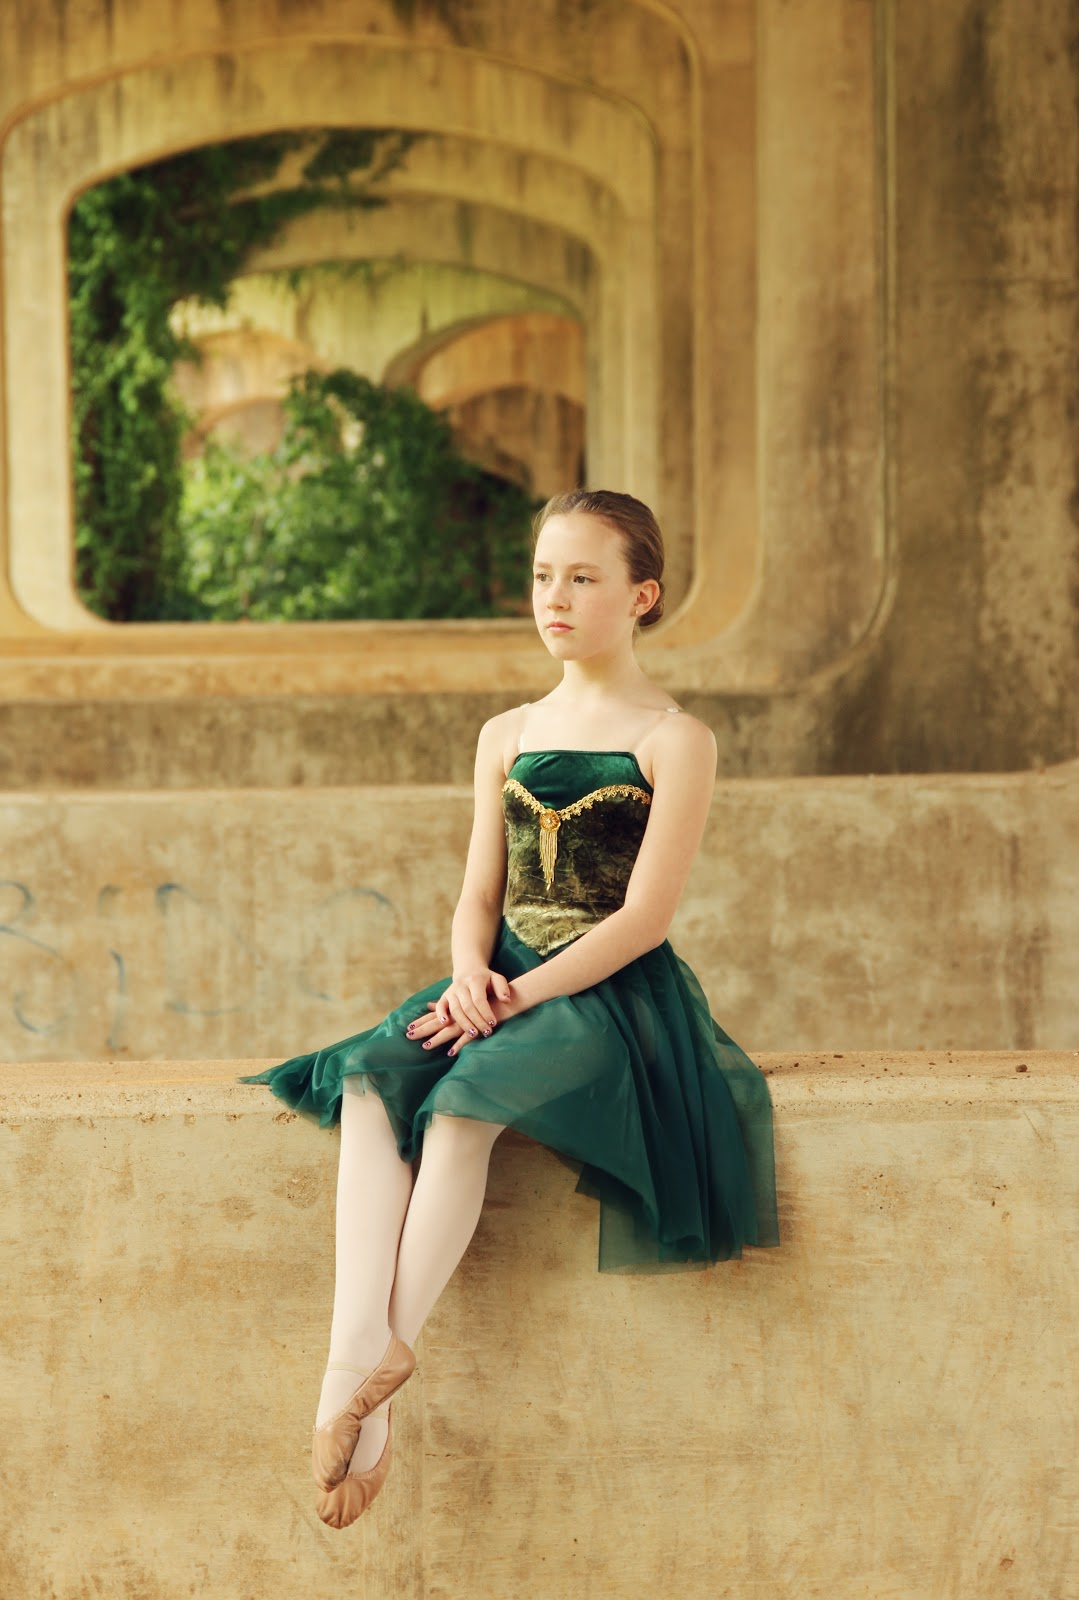 Andrea Howard Blog Beautiful Ballerina Photo Session